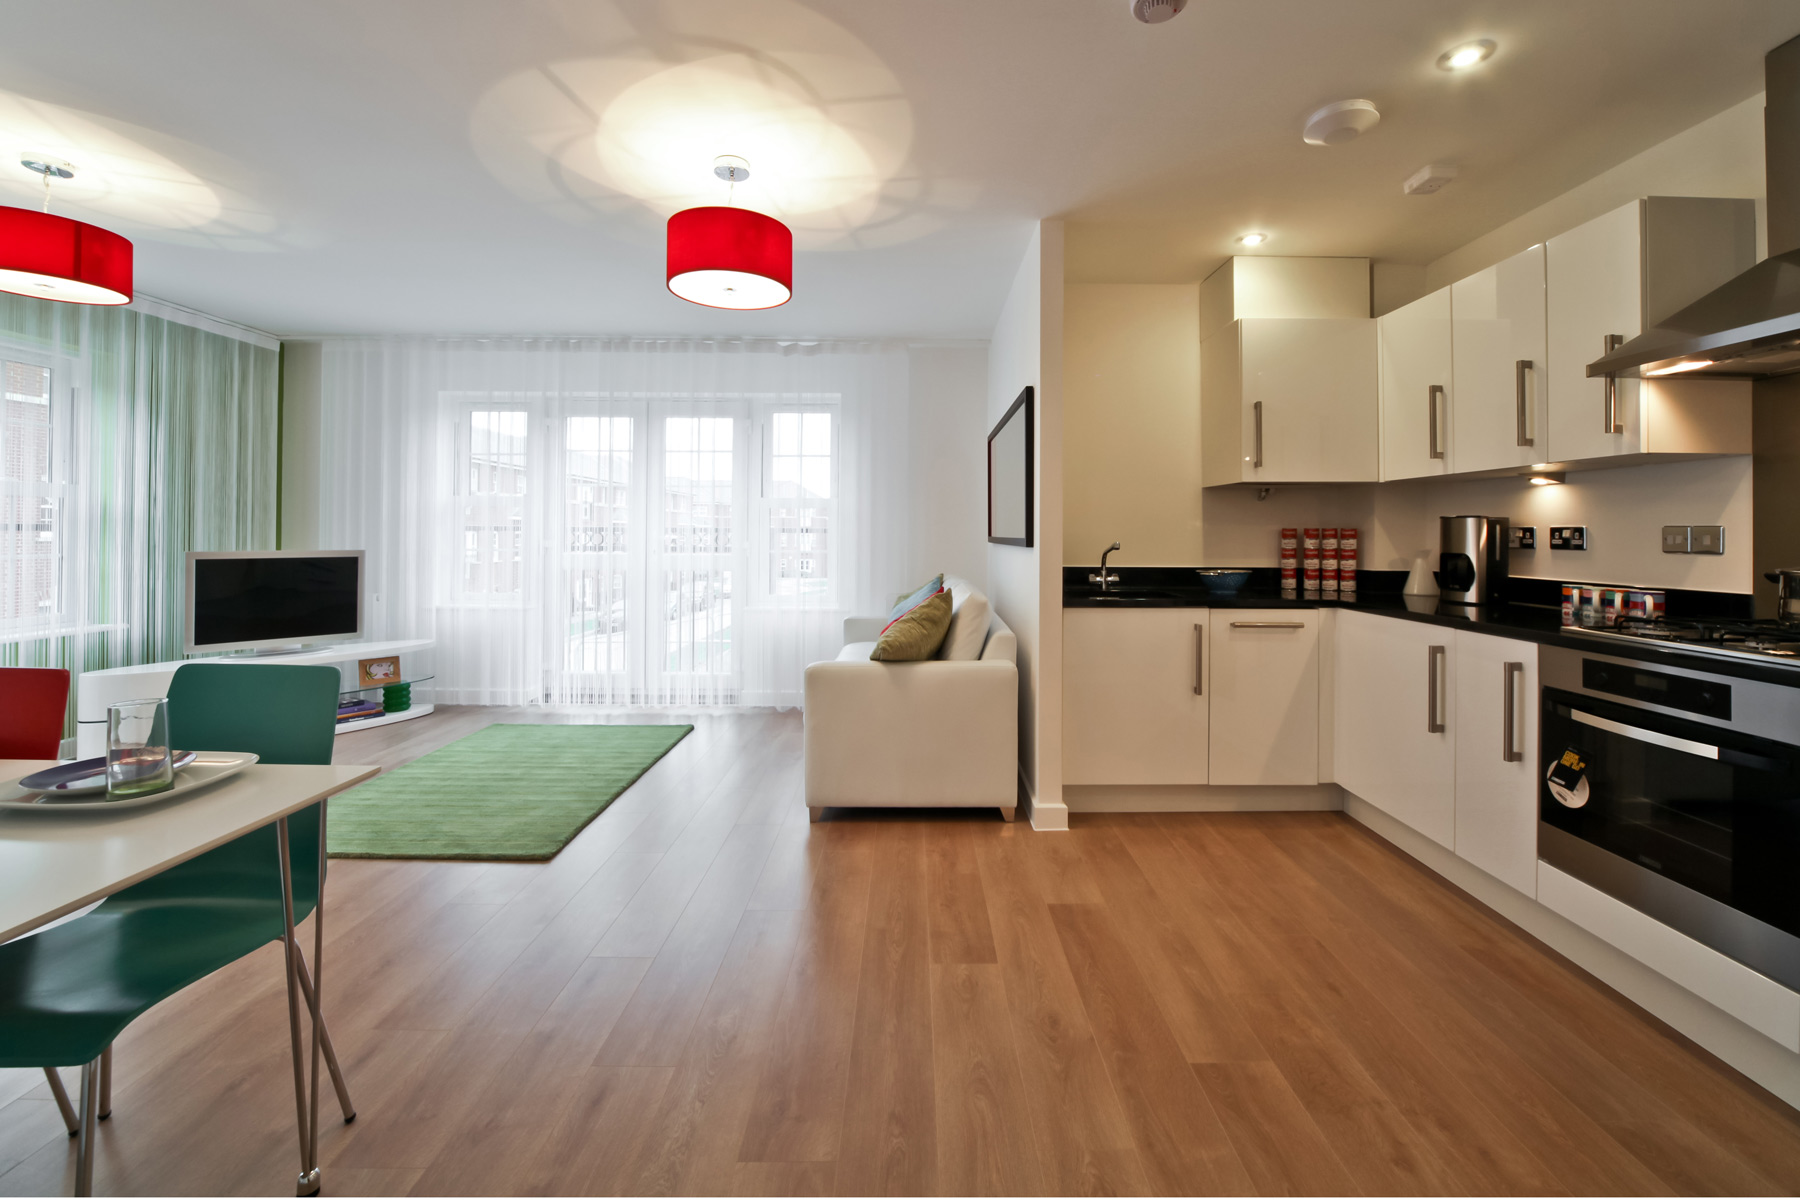 Typical Taylor Wimpey apartment living area and kitchen.